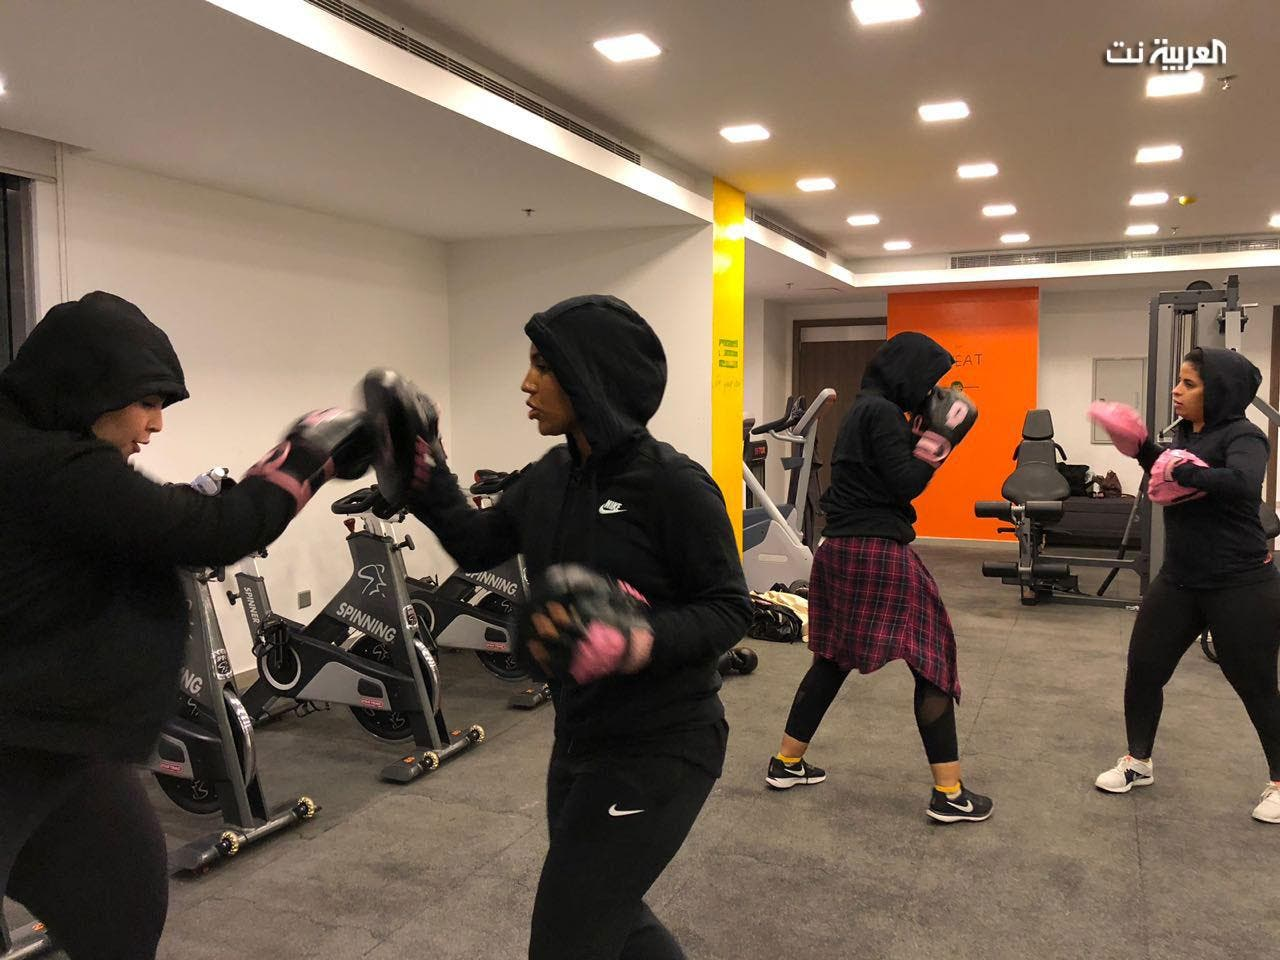 Saudi women put on boxing gloves for sporting glory, self-defense